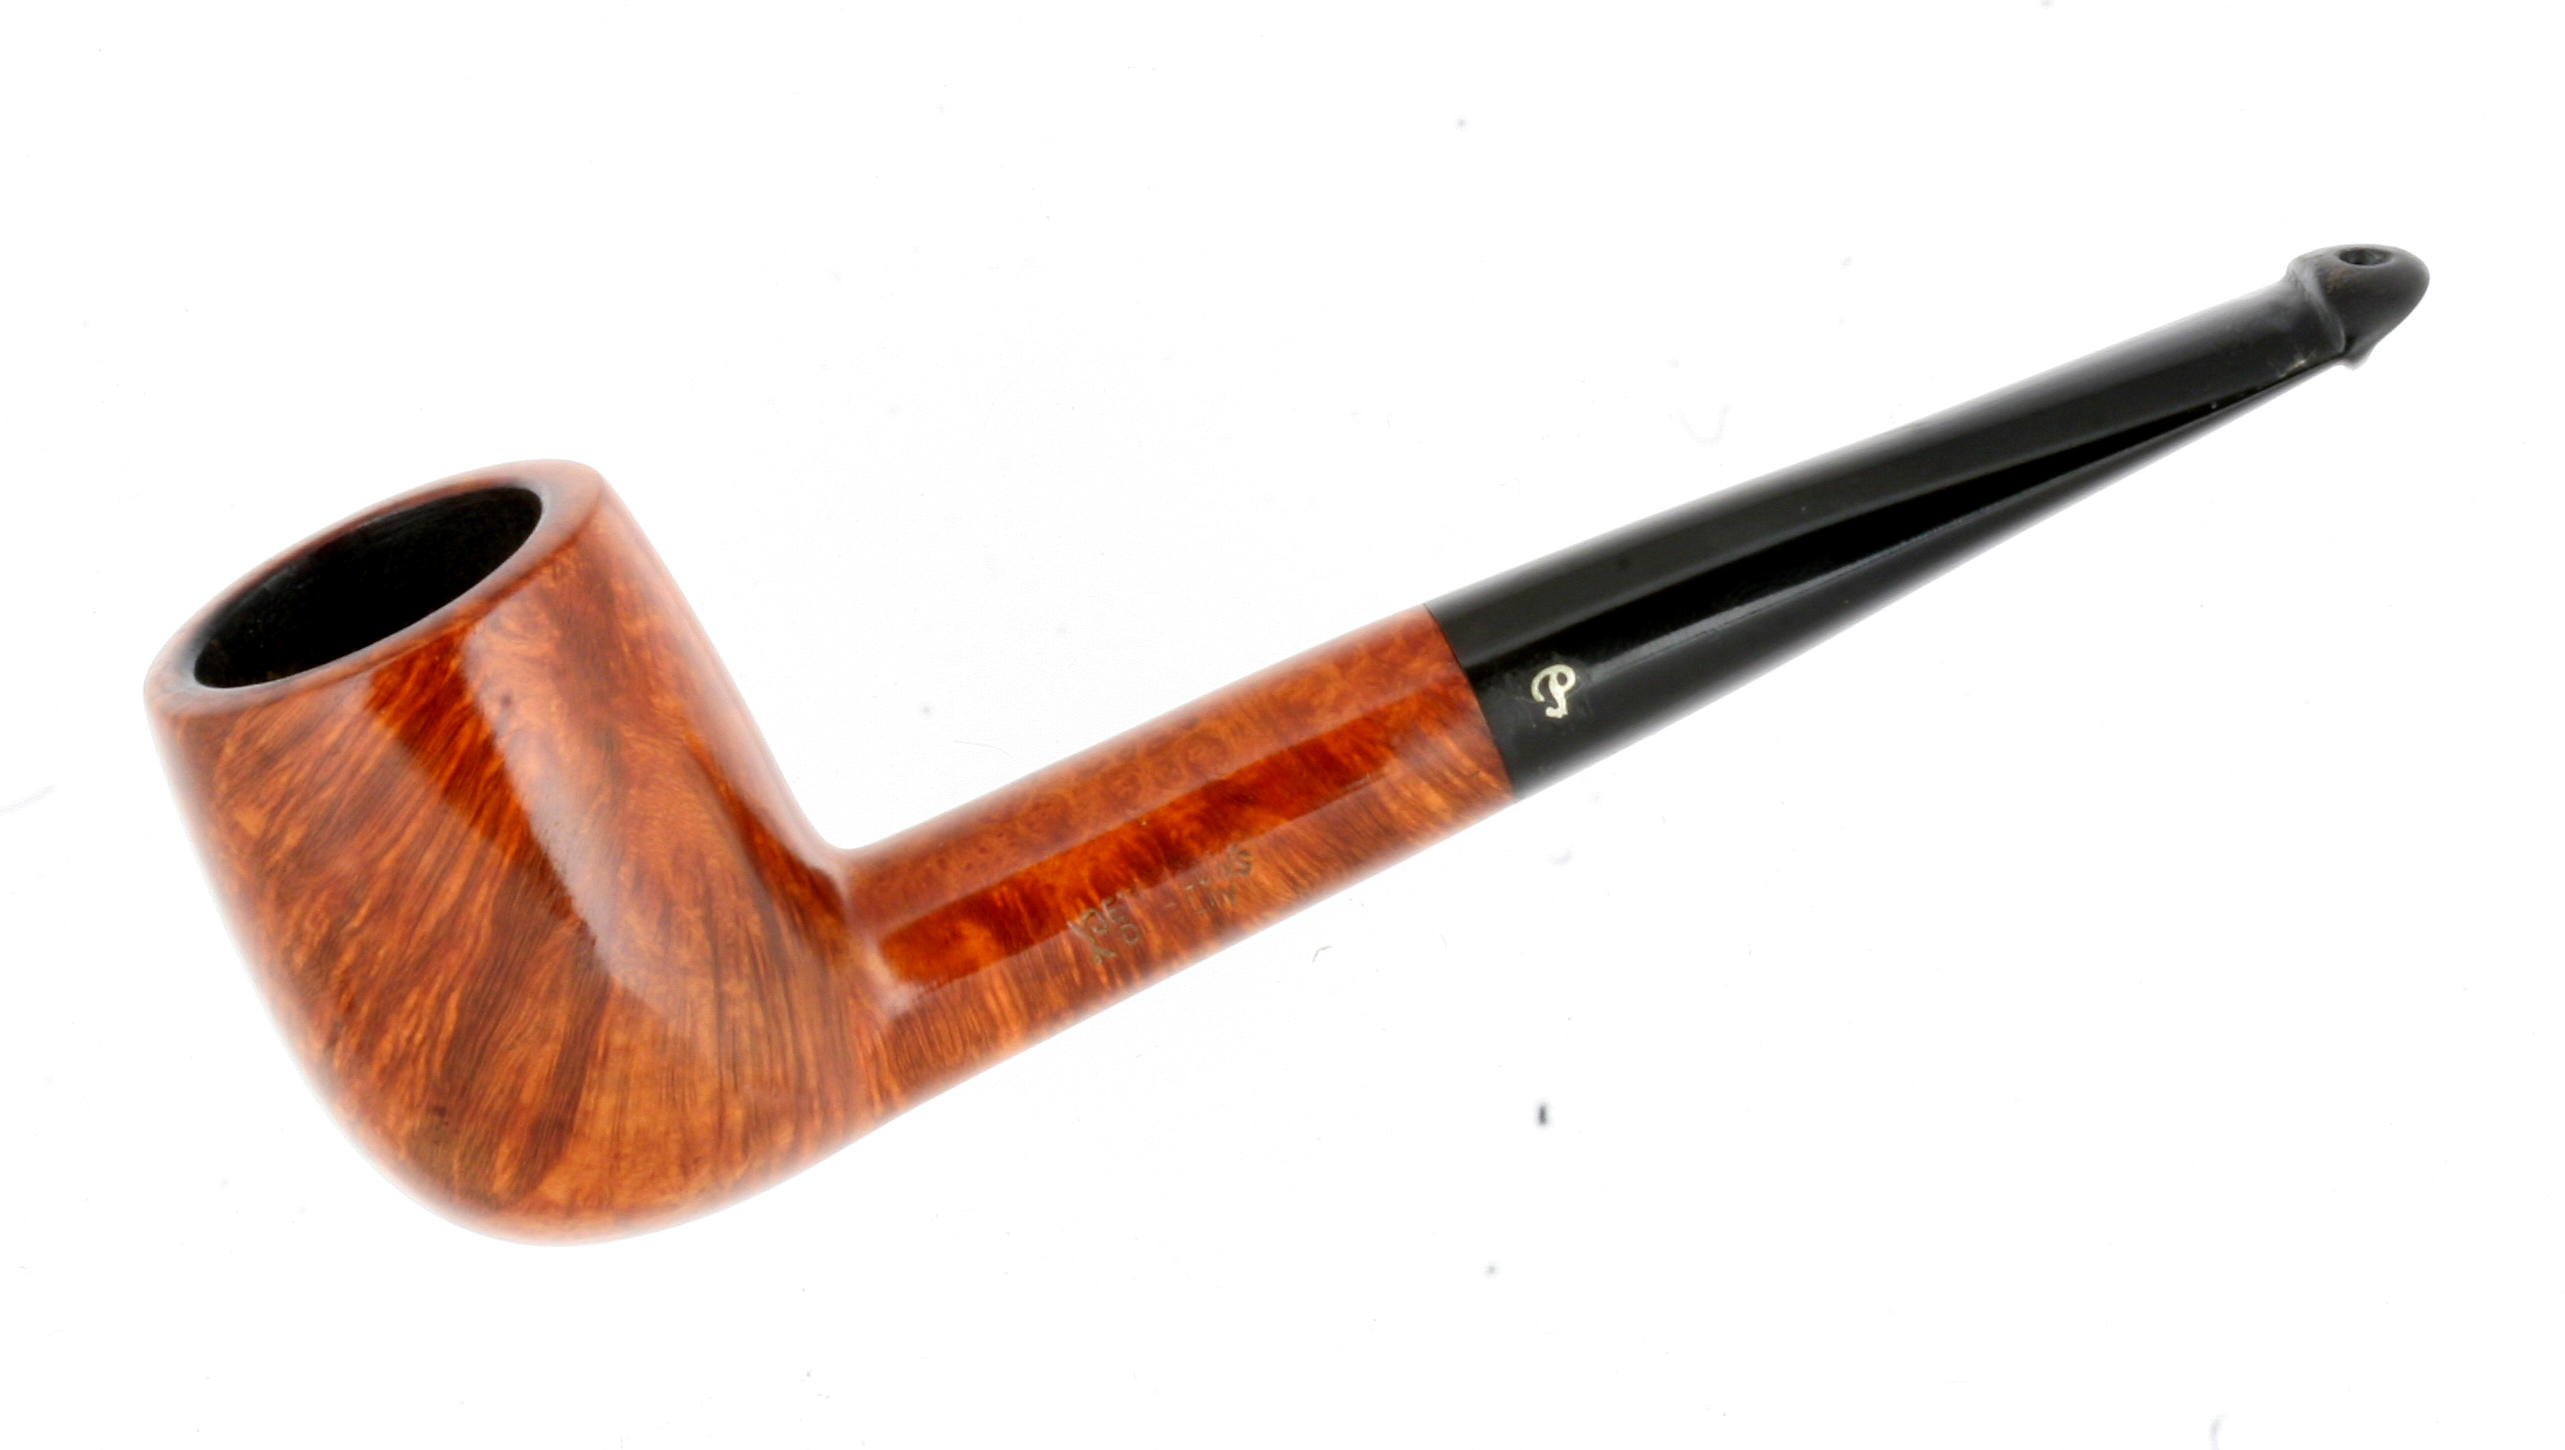 dating pipe tobacco Shop for stanwell 75th anniversary smooth pipes here at pipes and cigars get 25% off peter stokkebye pipe tobacco all of august with promo code aug18.